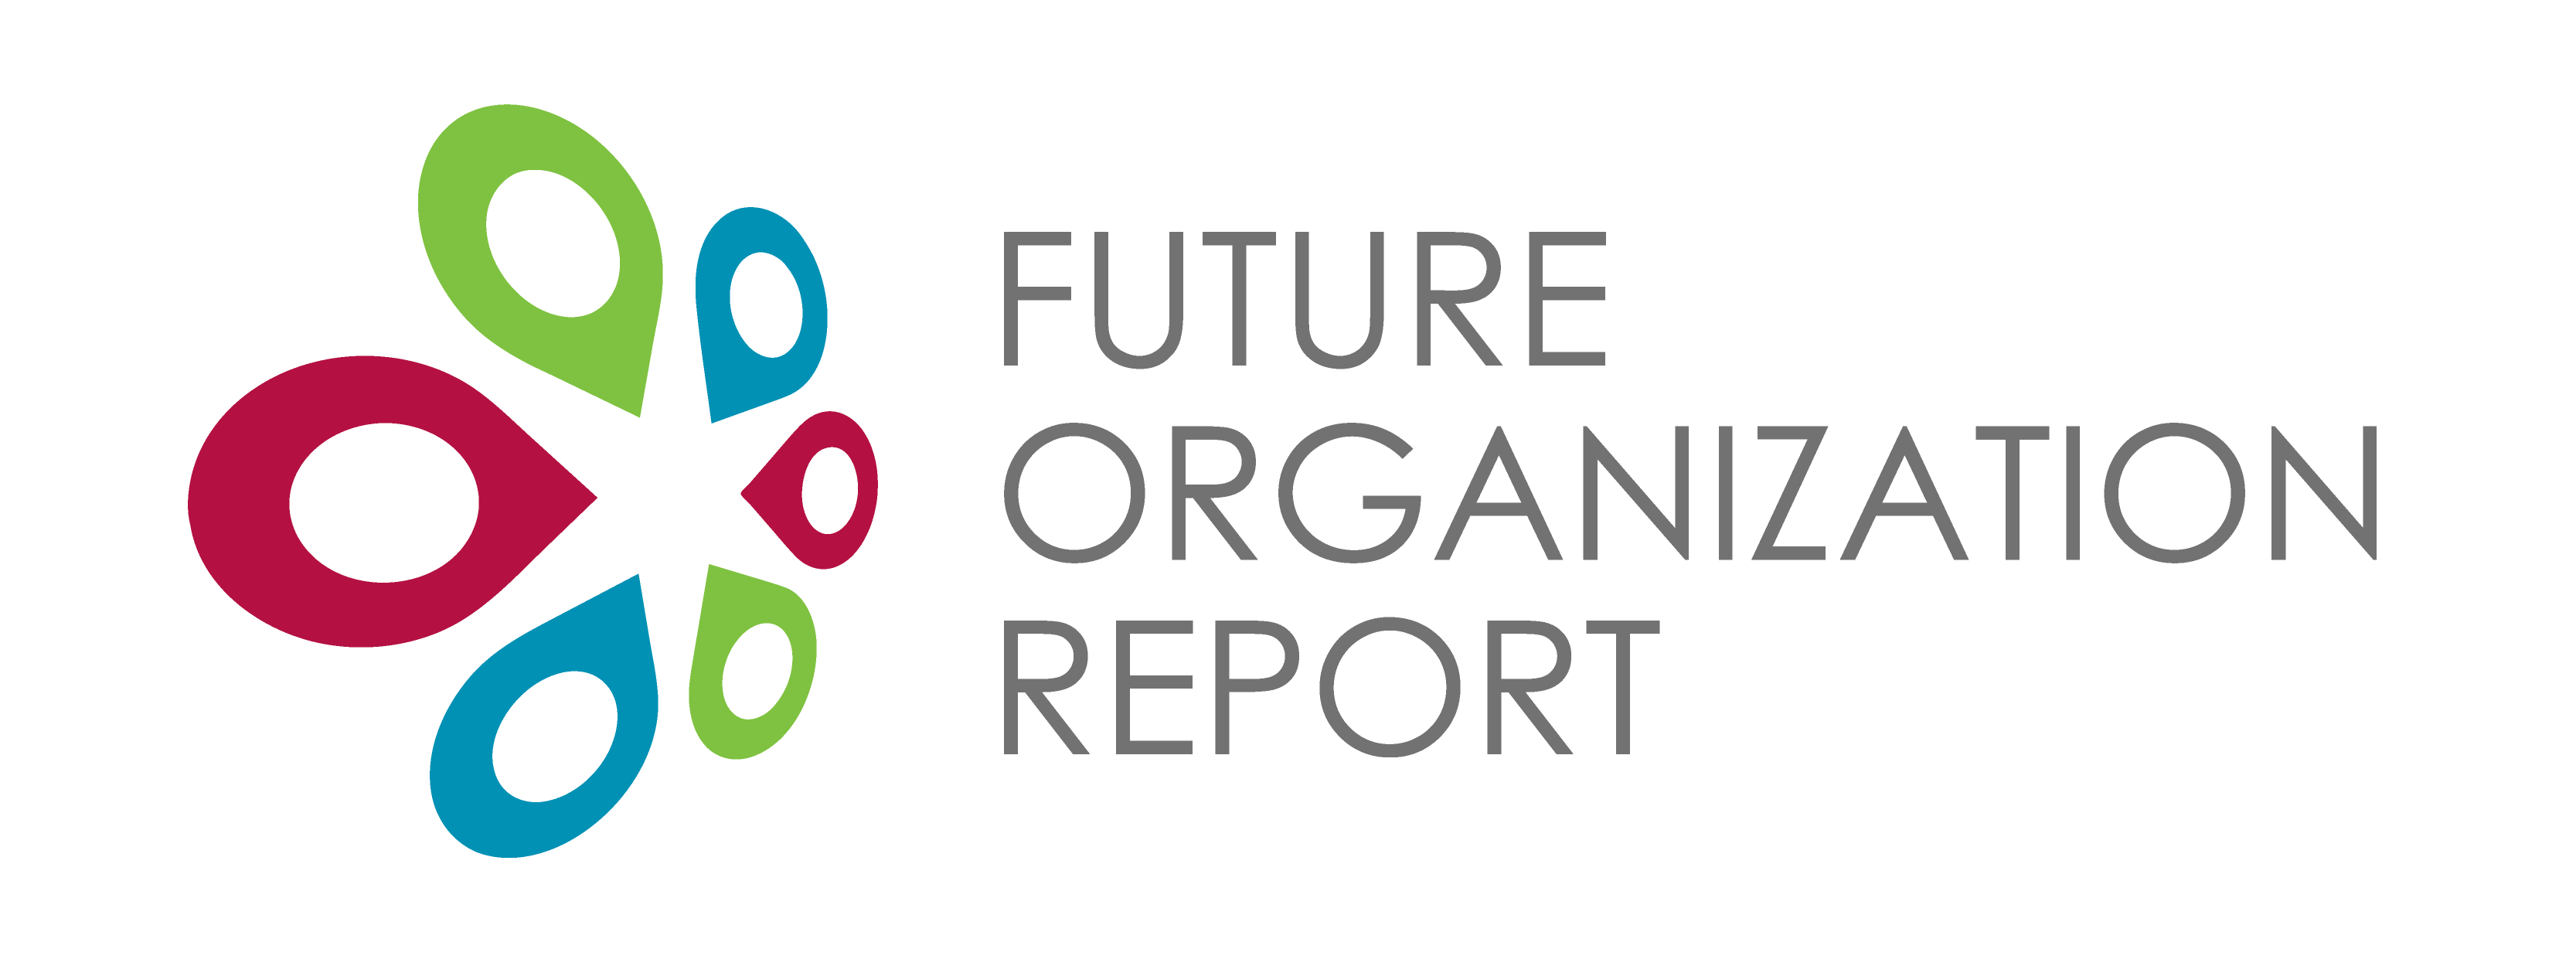 Future Organization Report